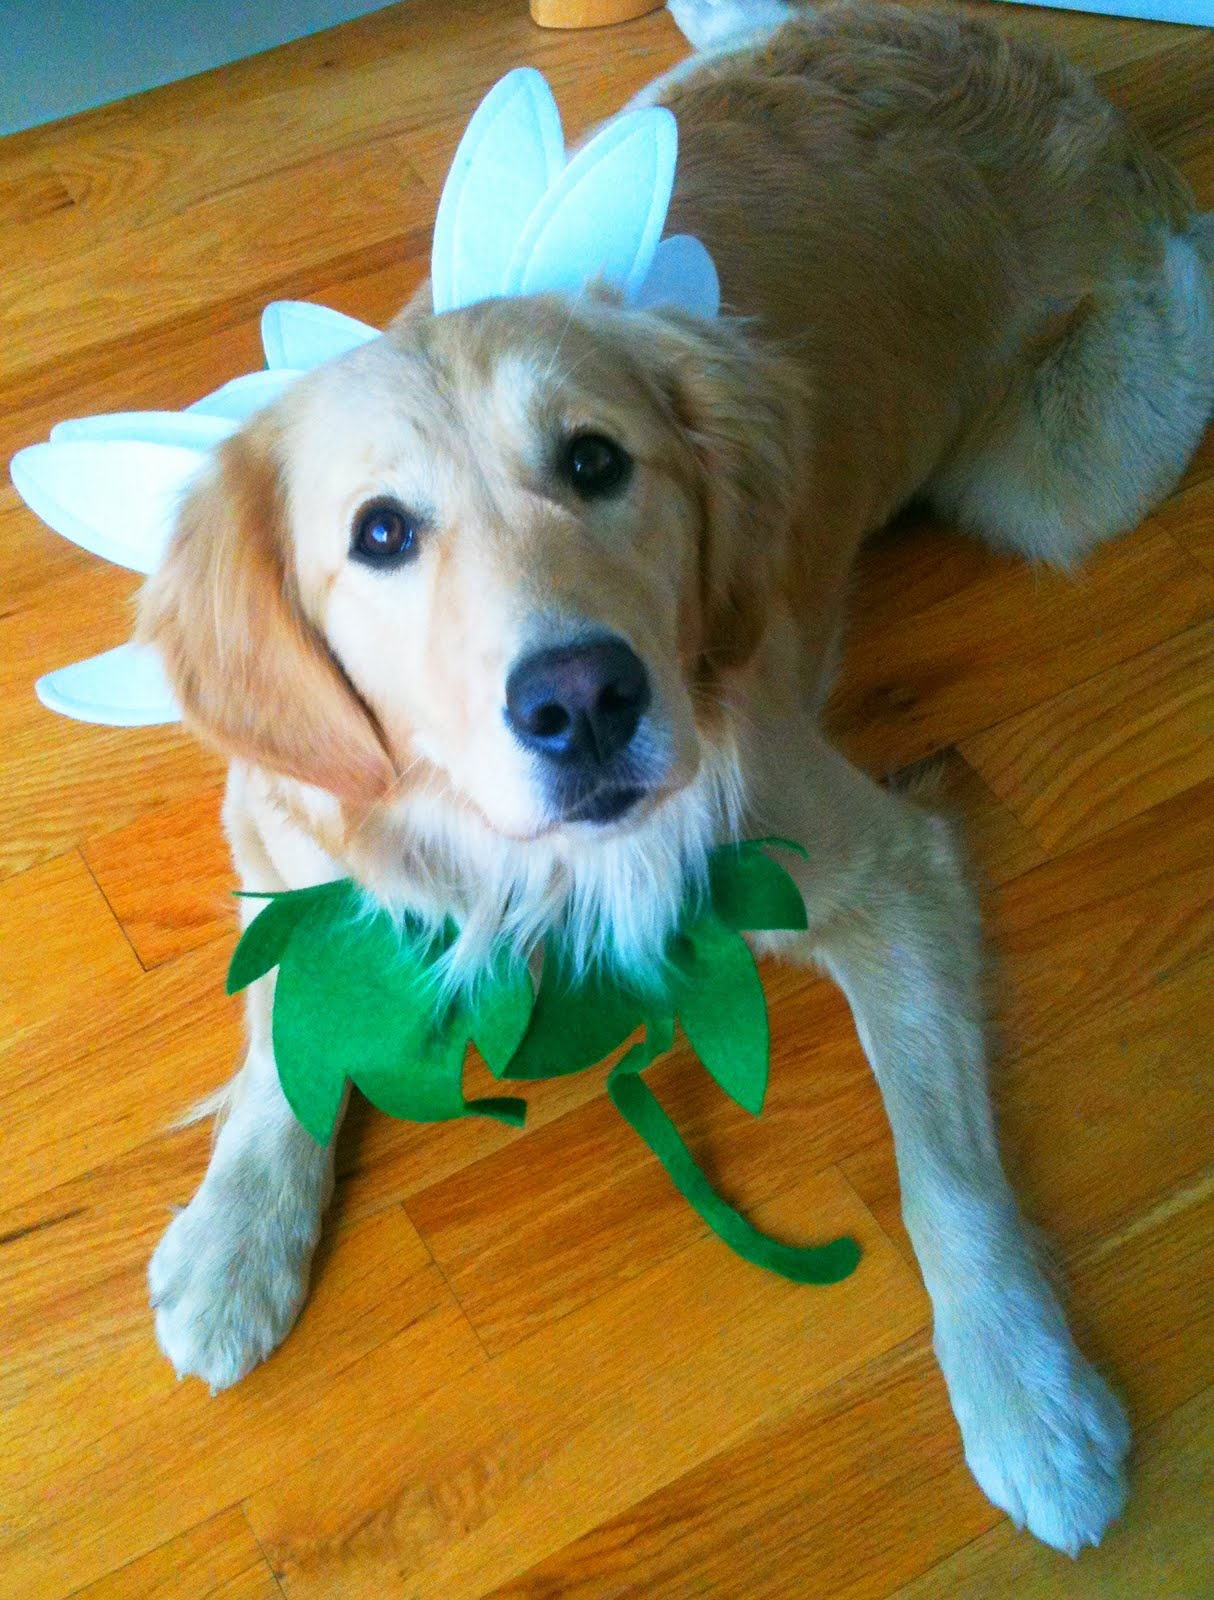 daisy's halloween daisy costume | daisy parker - golden retriever puppy